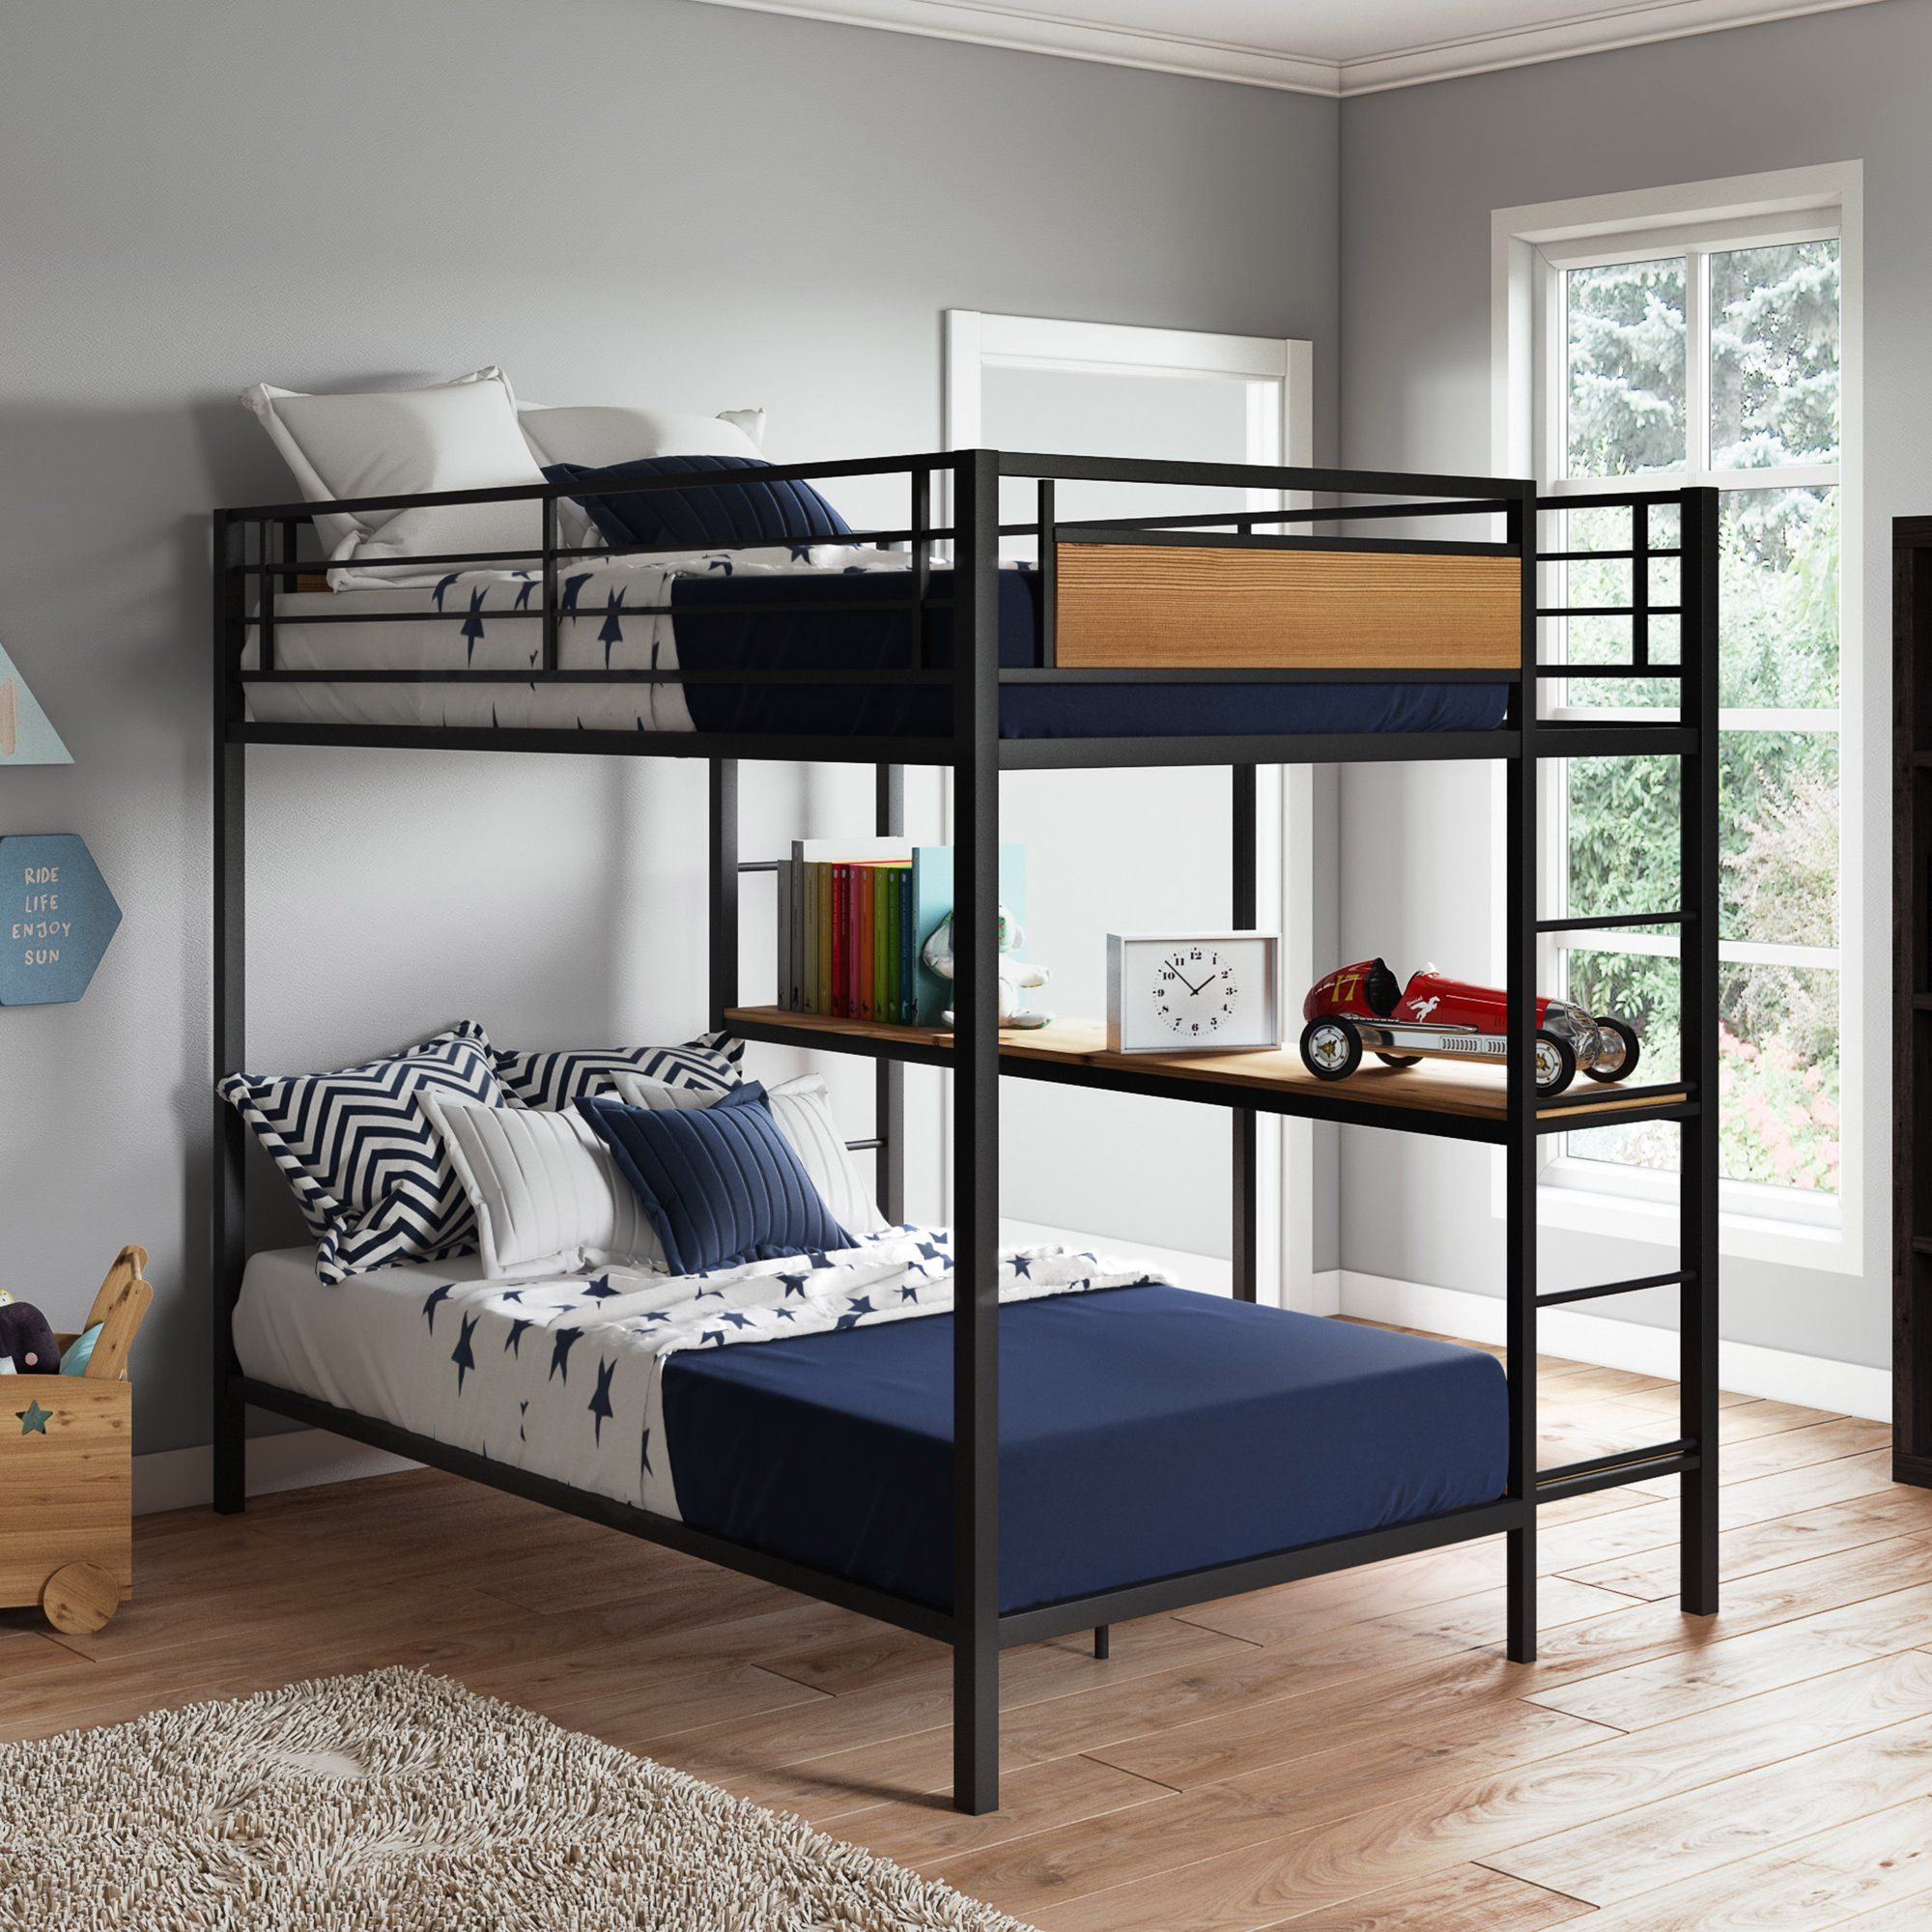 Better Homes & Gardens Austen Full Over Twin Bunk Bed with